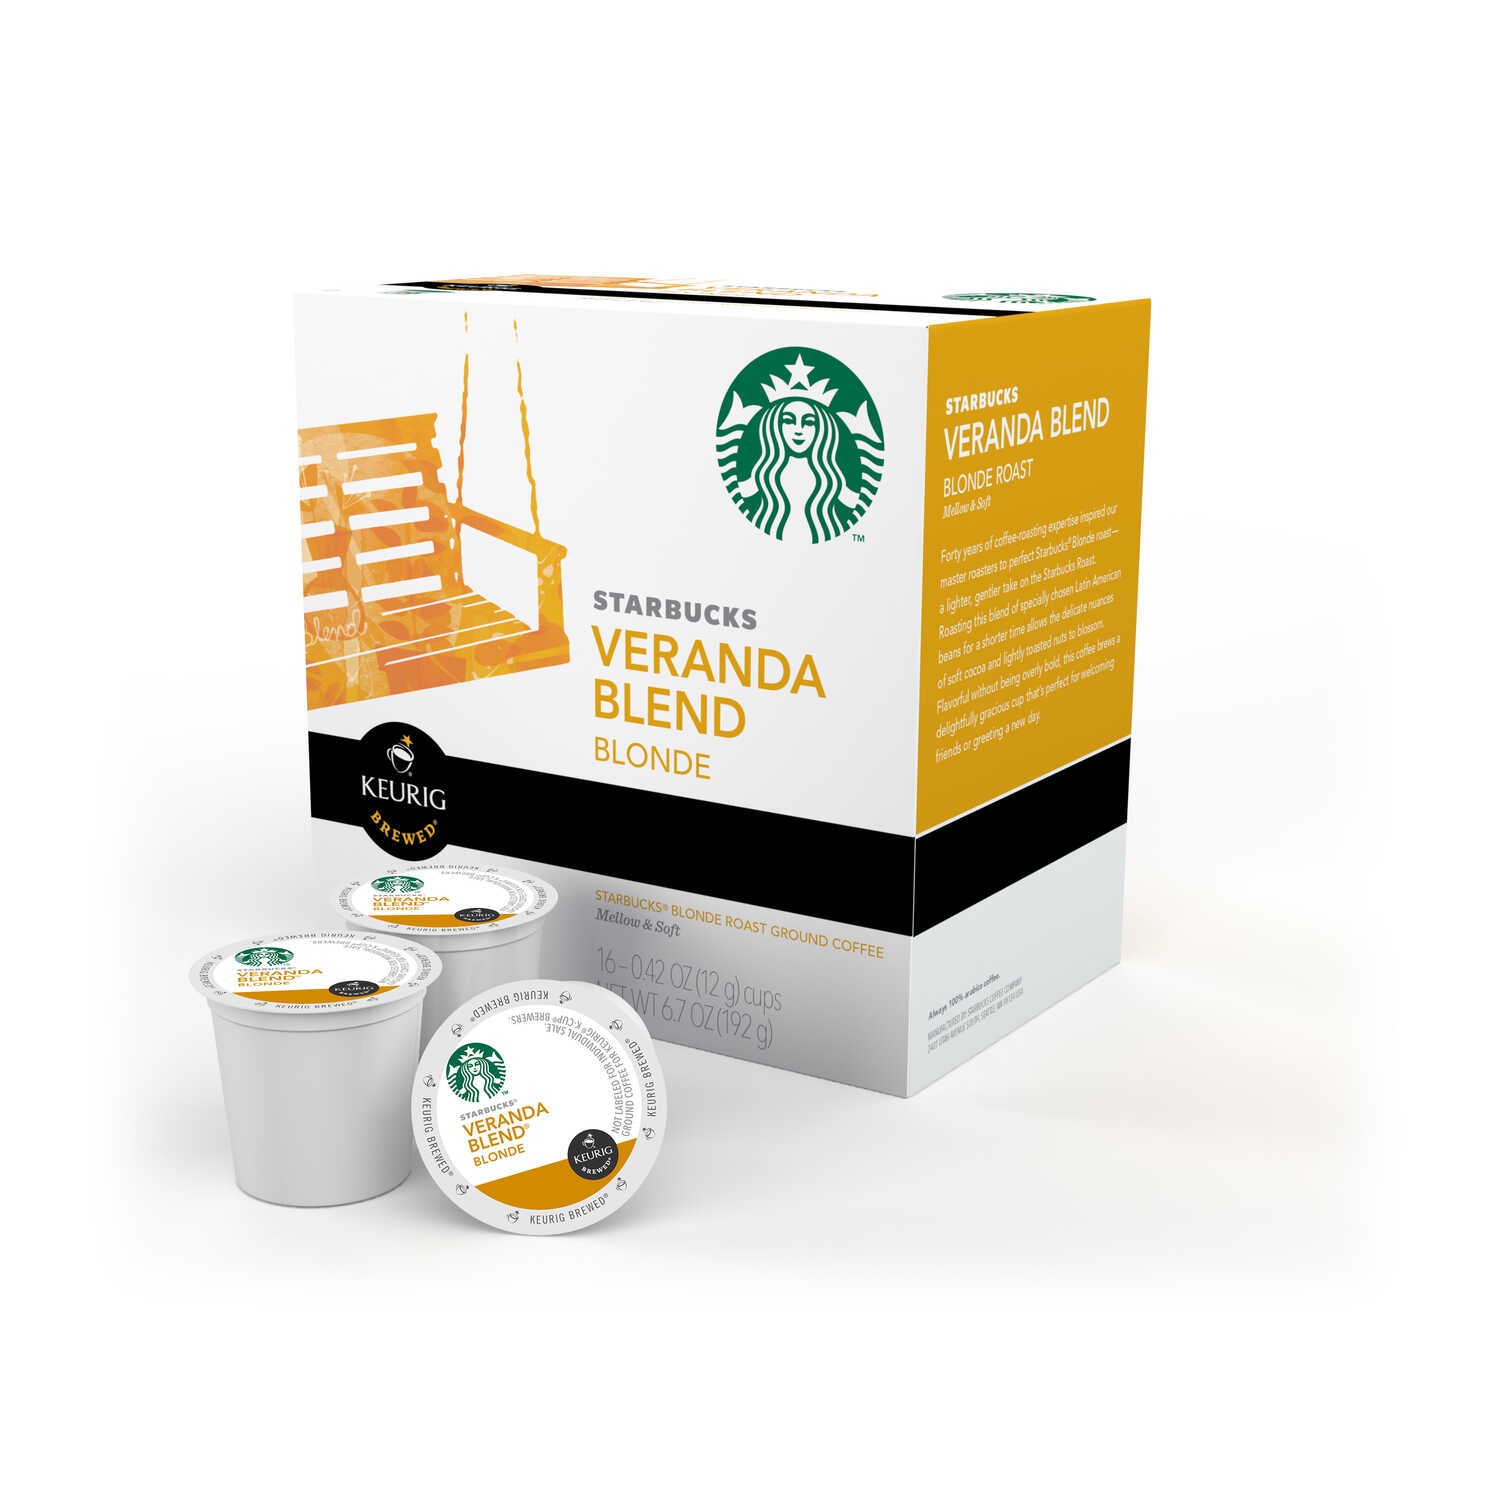 Keurig  Starbucks  Veranda Blend Blonde  Coffee K-Cups  16 pk